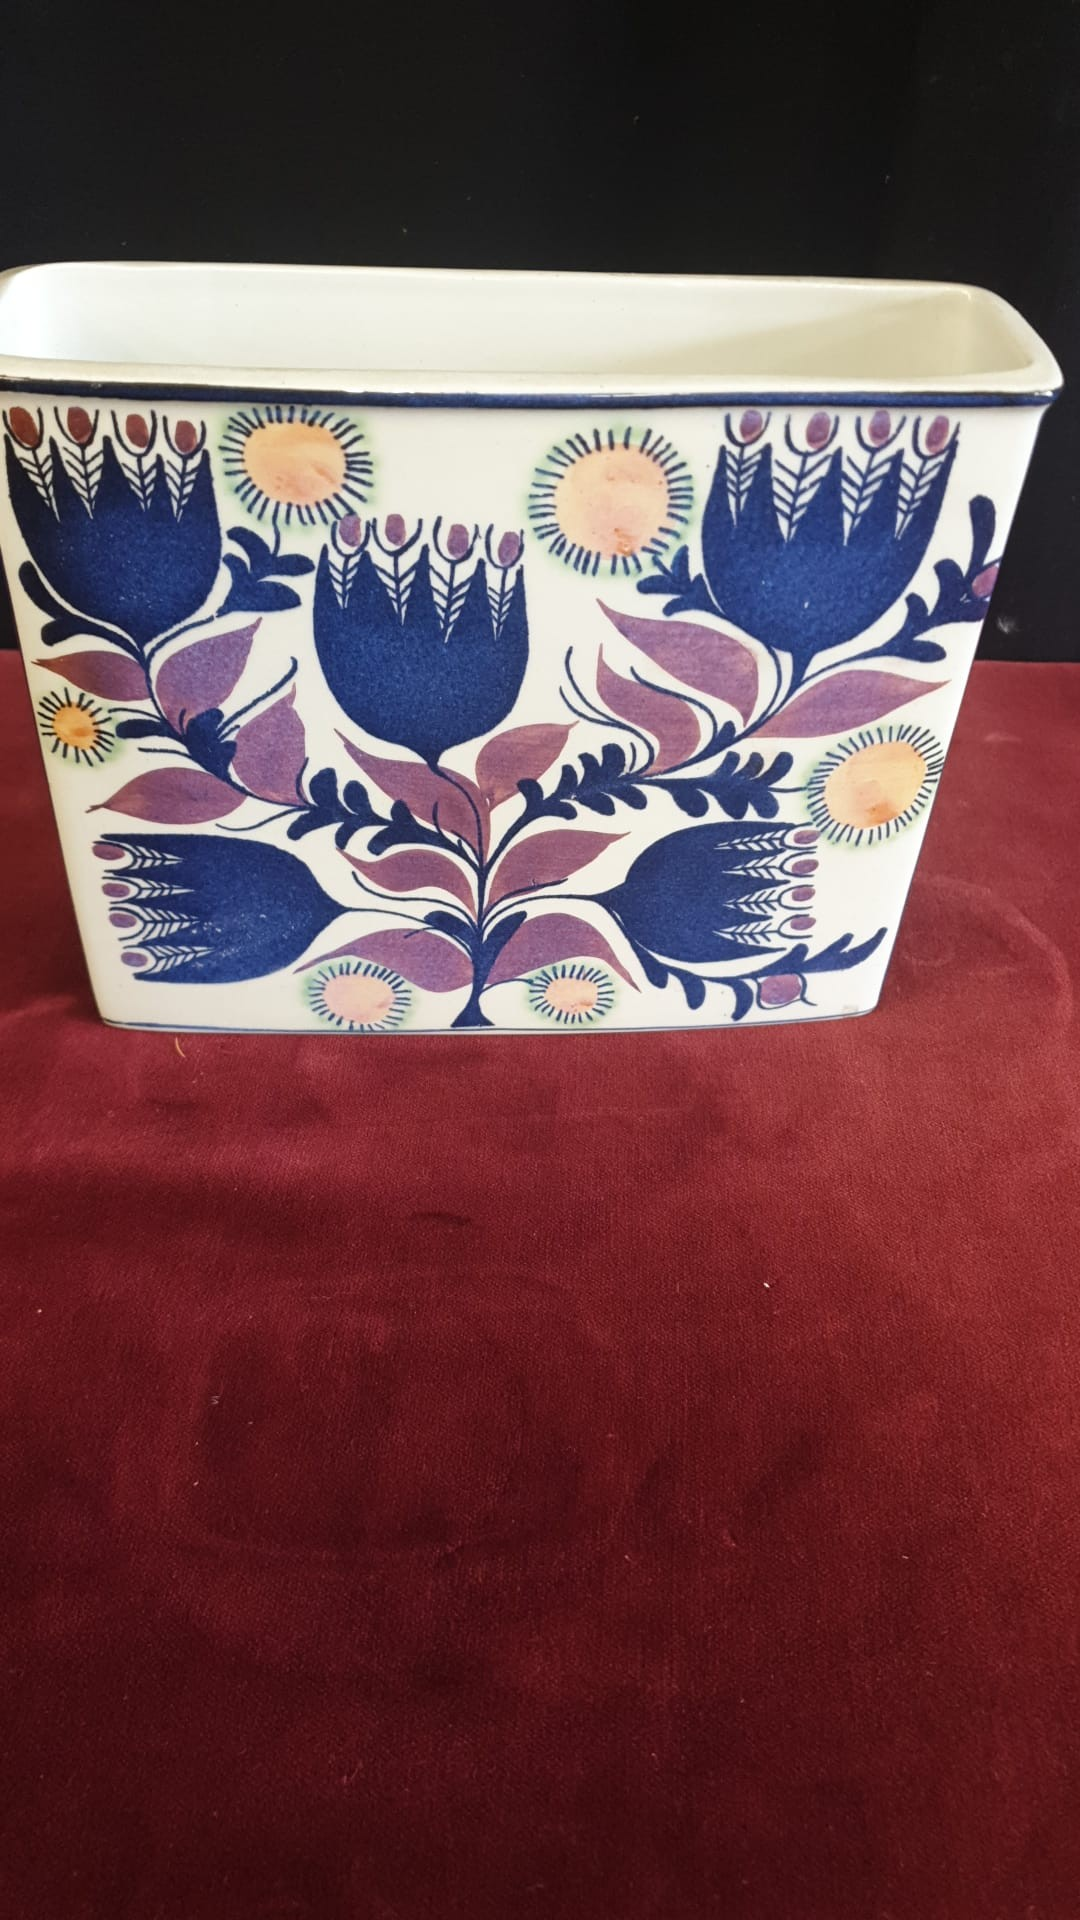 Rare Retro Royal Copenhagen Vase Stands 17cm Tall Faiance Pattern Signed By Artist - Image 2 of 4